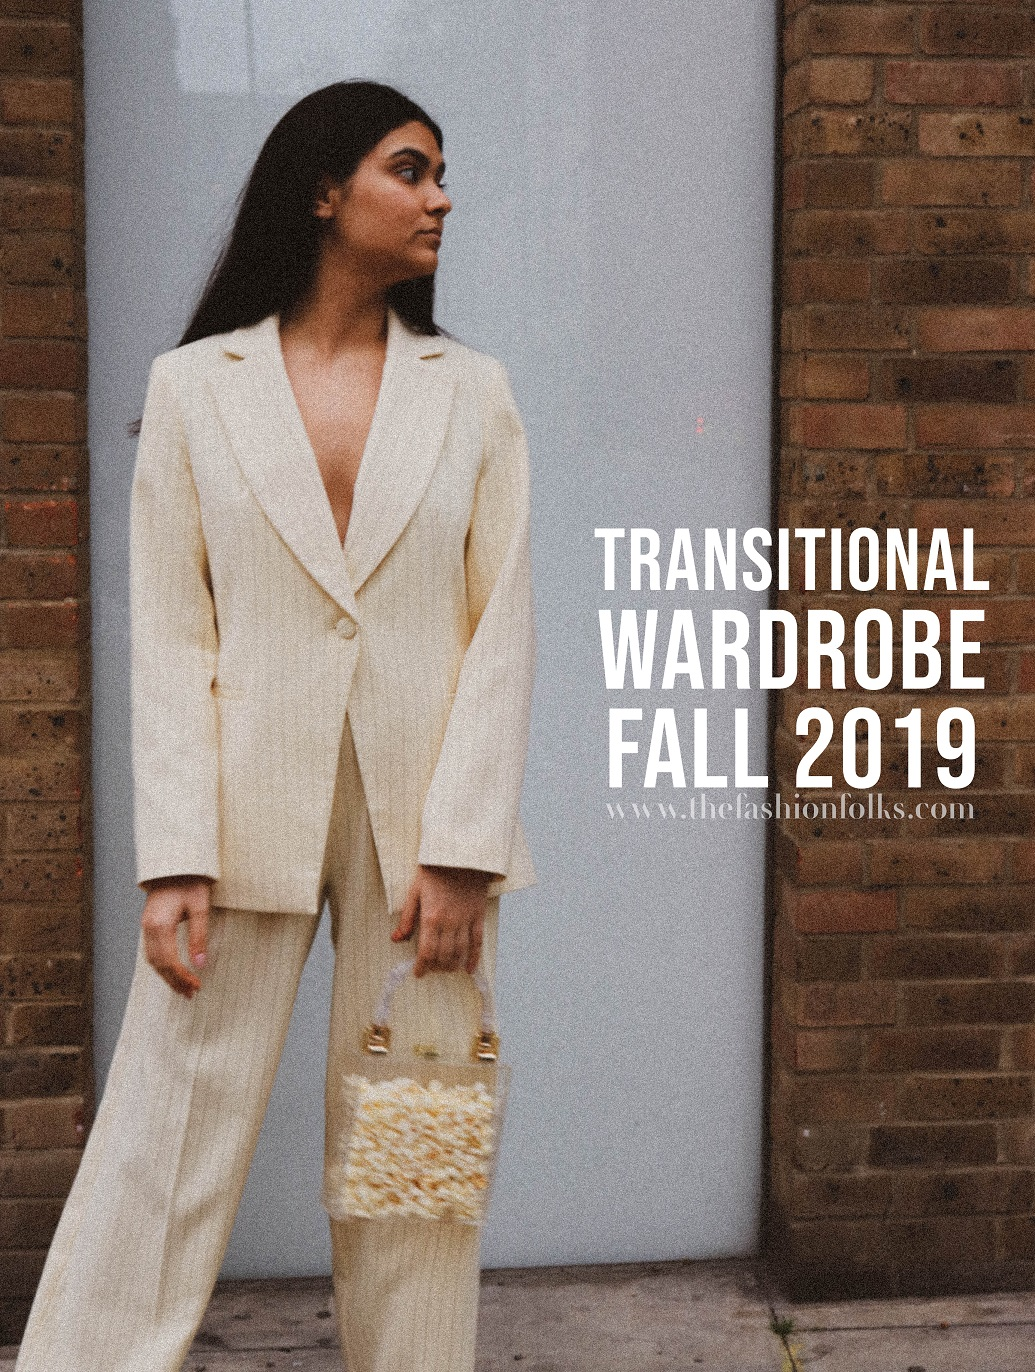 Transitional Wardrobe Fall 2019